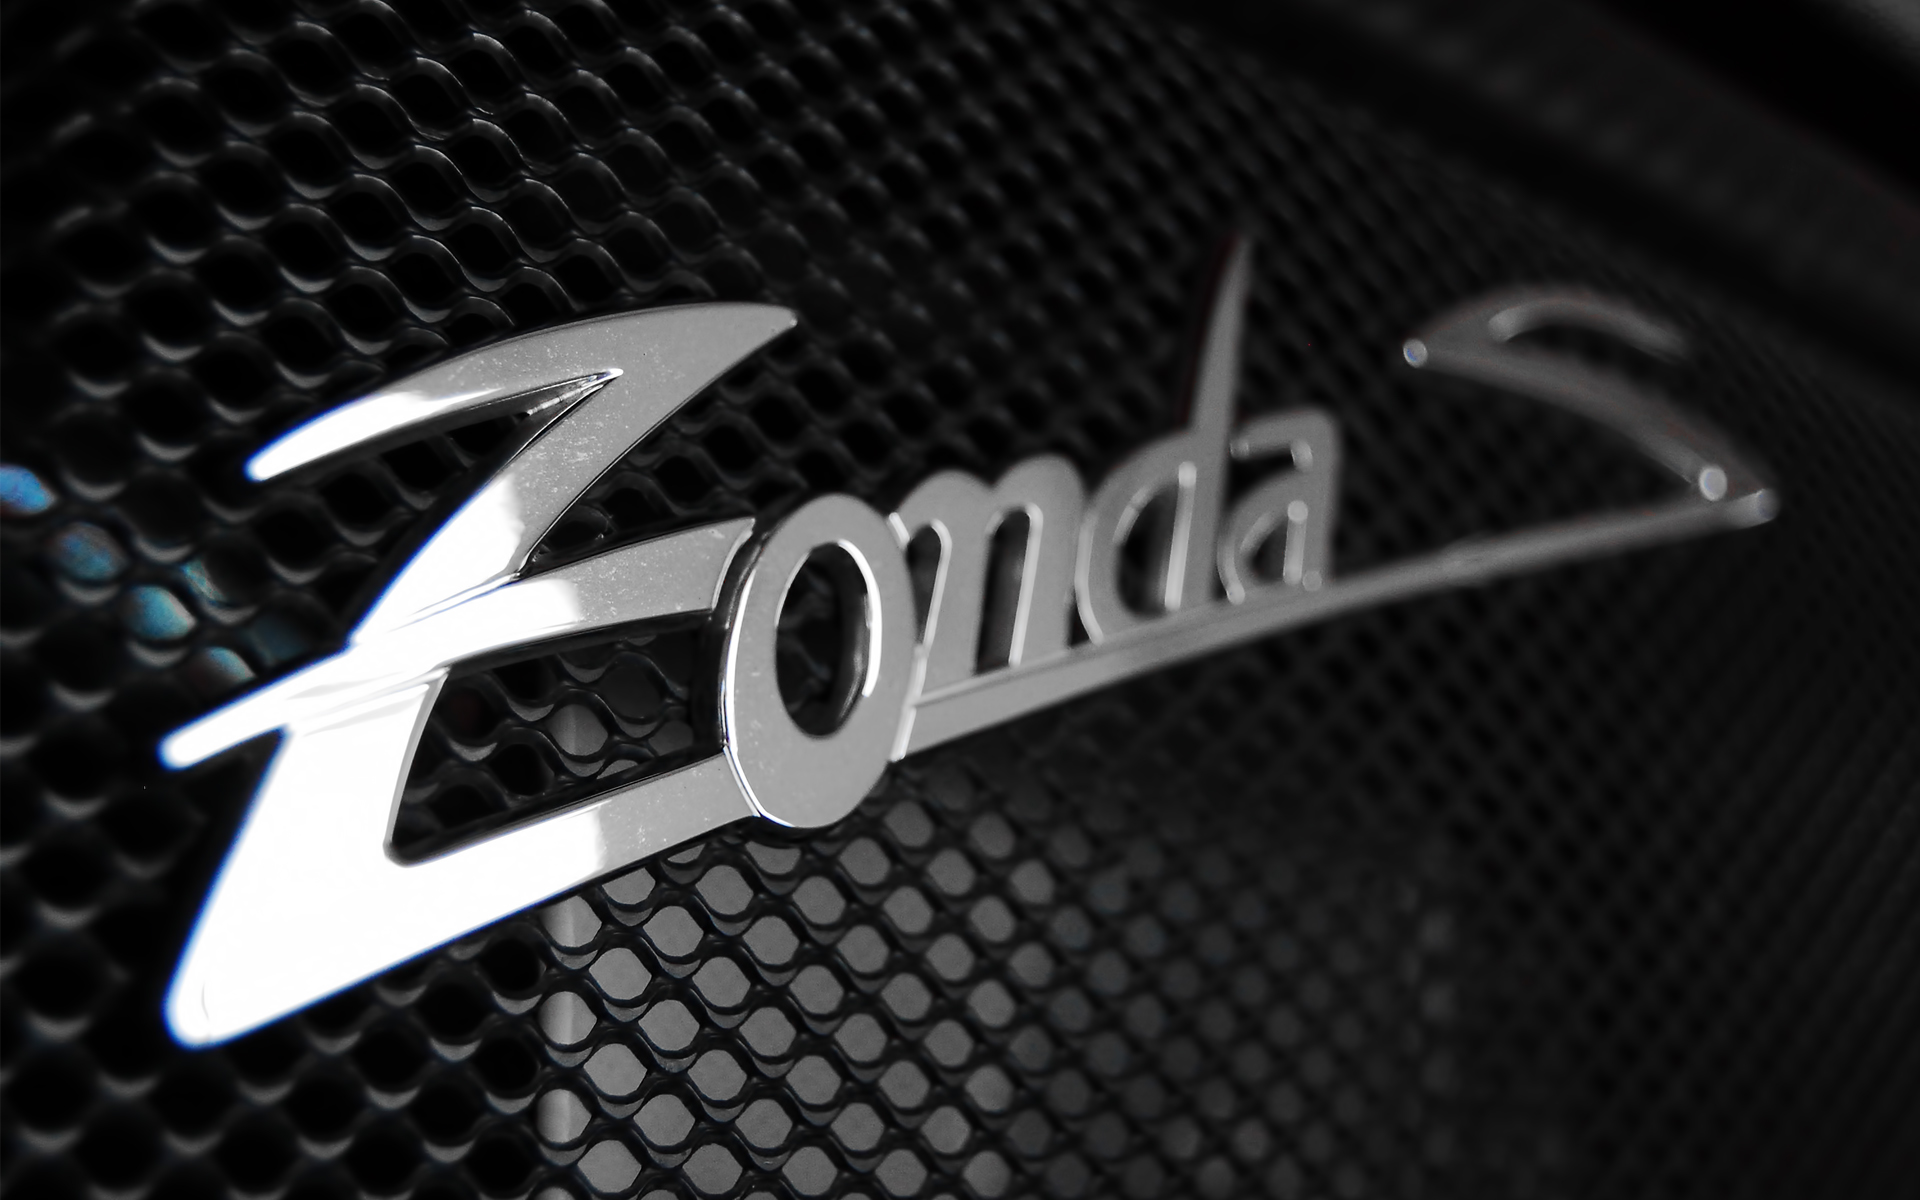 pagani zonda logo wallpaper 59092